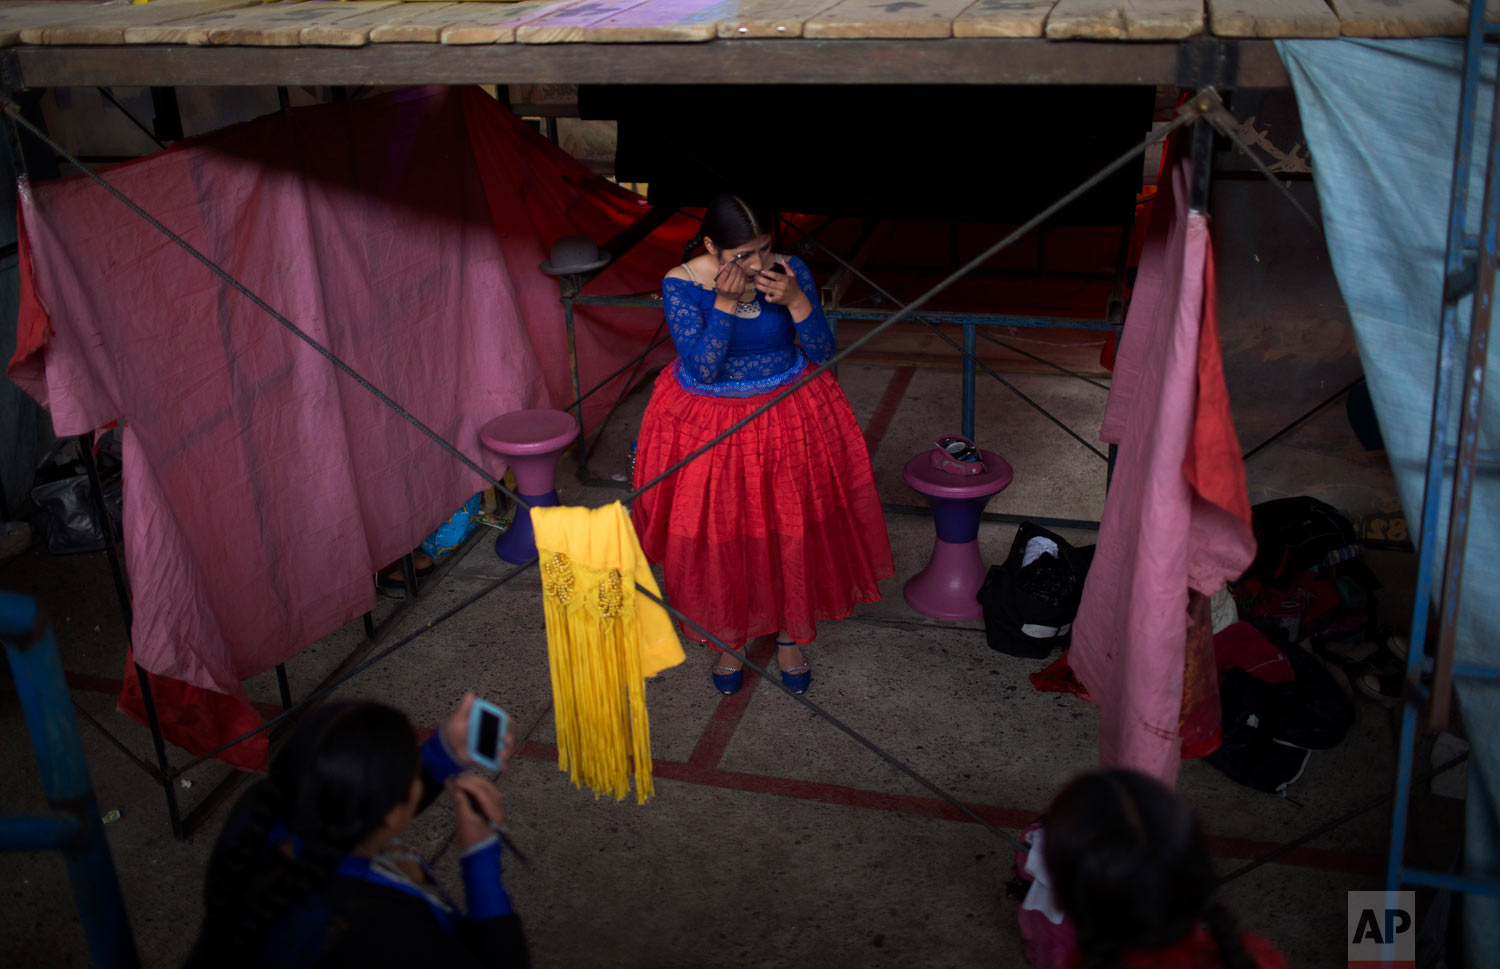 Young cholita wrestler Wara puts her makeup on before competing in the ring in El Alto, Bolivia, Sunday, Feb. 24, 2019. (AP Photo/Juan Karita)